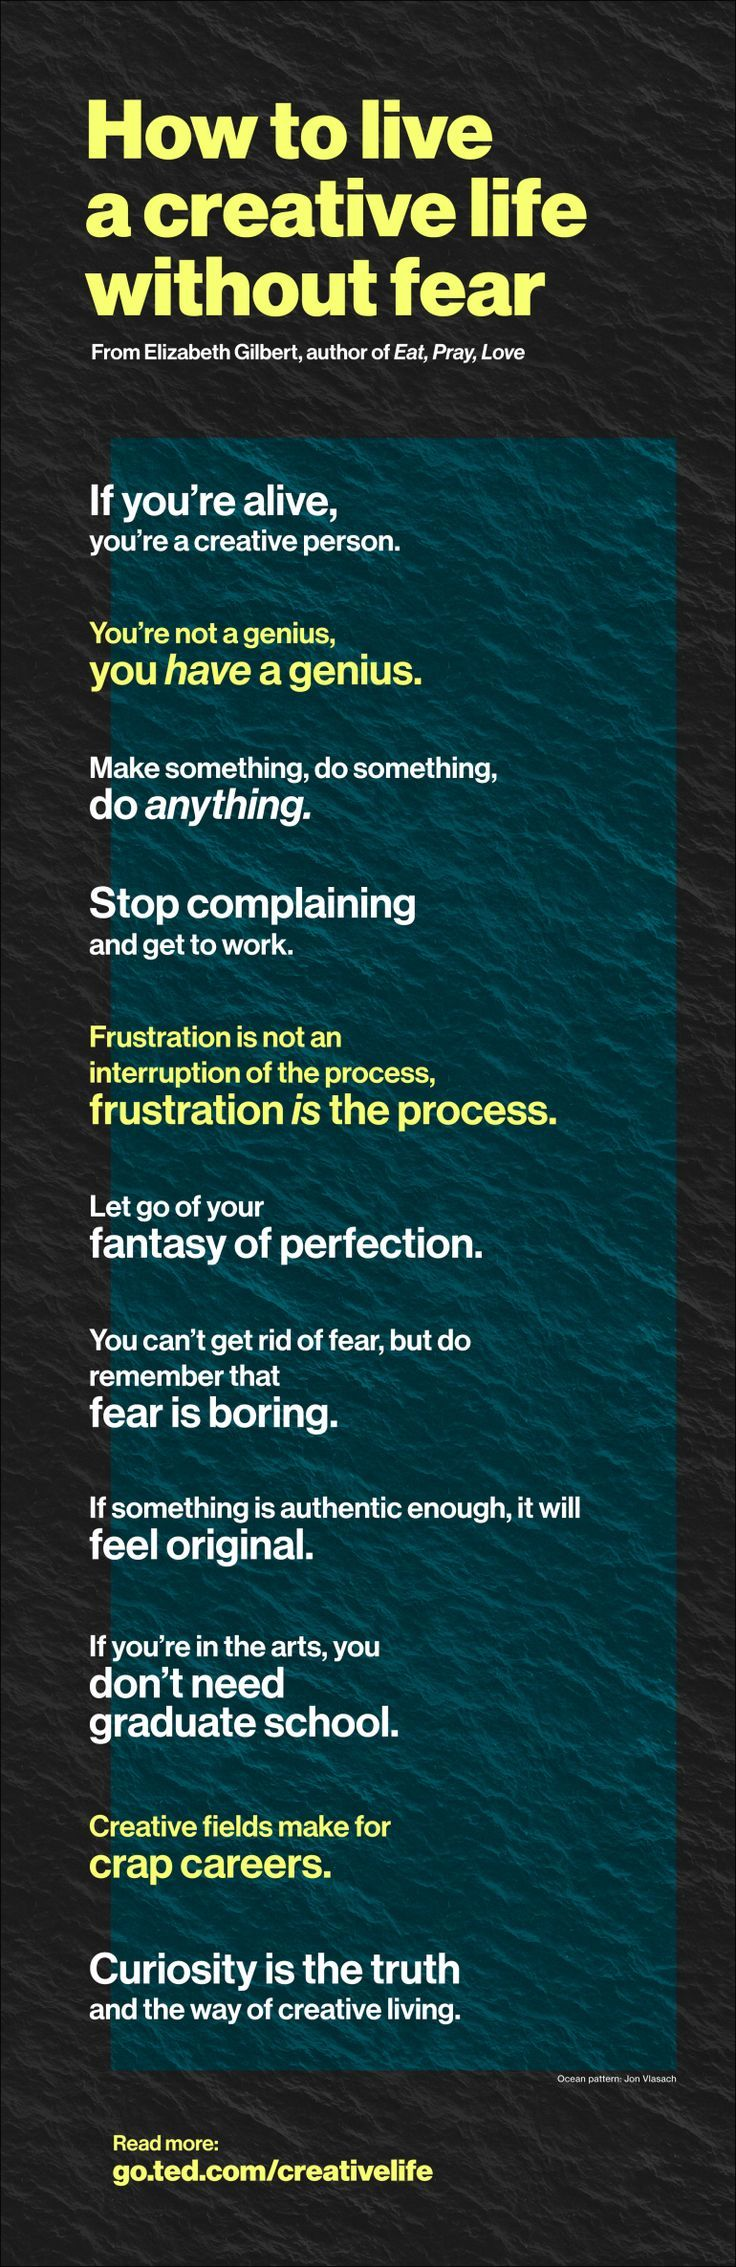 Work Motivation Quotes : Fear is boring and other tips for living a creative life | ideas.ted.com